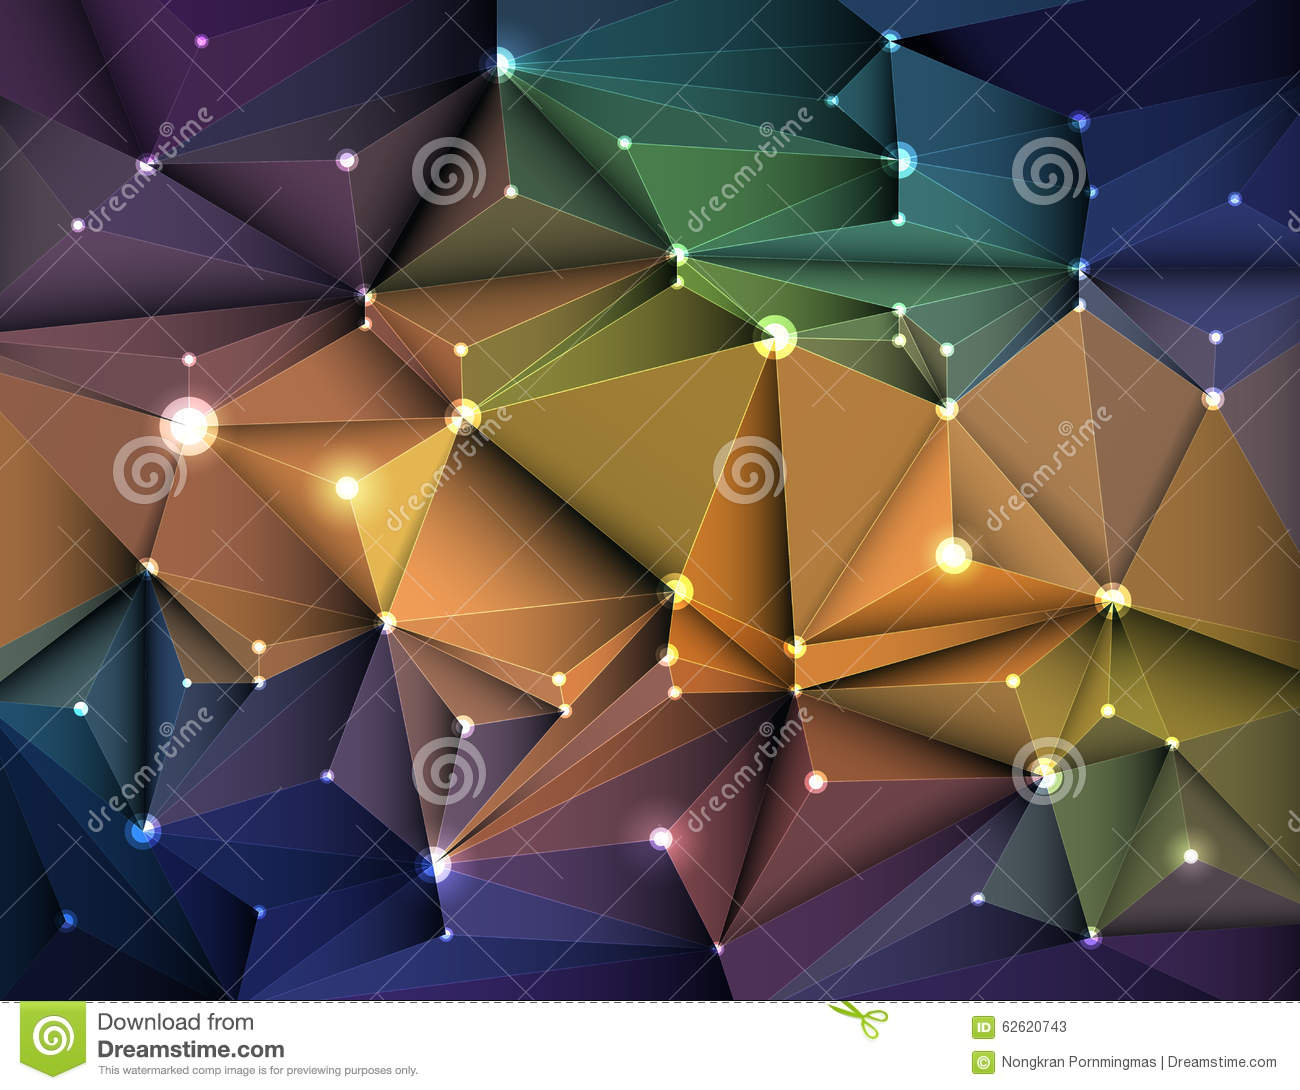 Vector illustration Abstract 3D Geometric, Polygonal, Triangle pattern in molecule structure shape